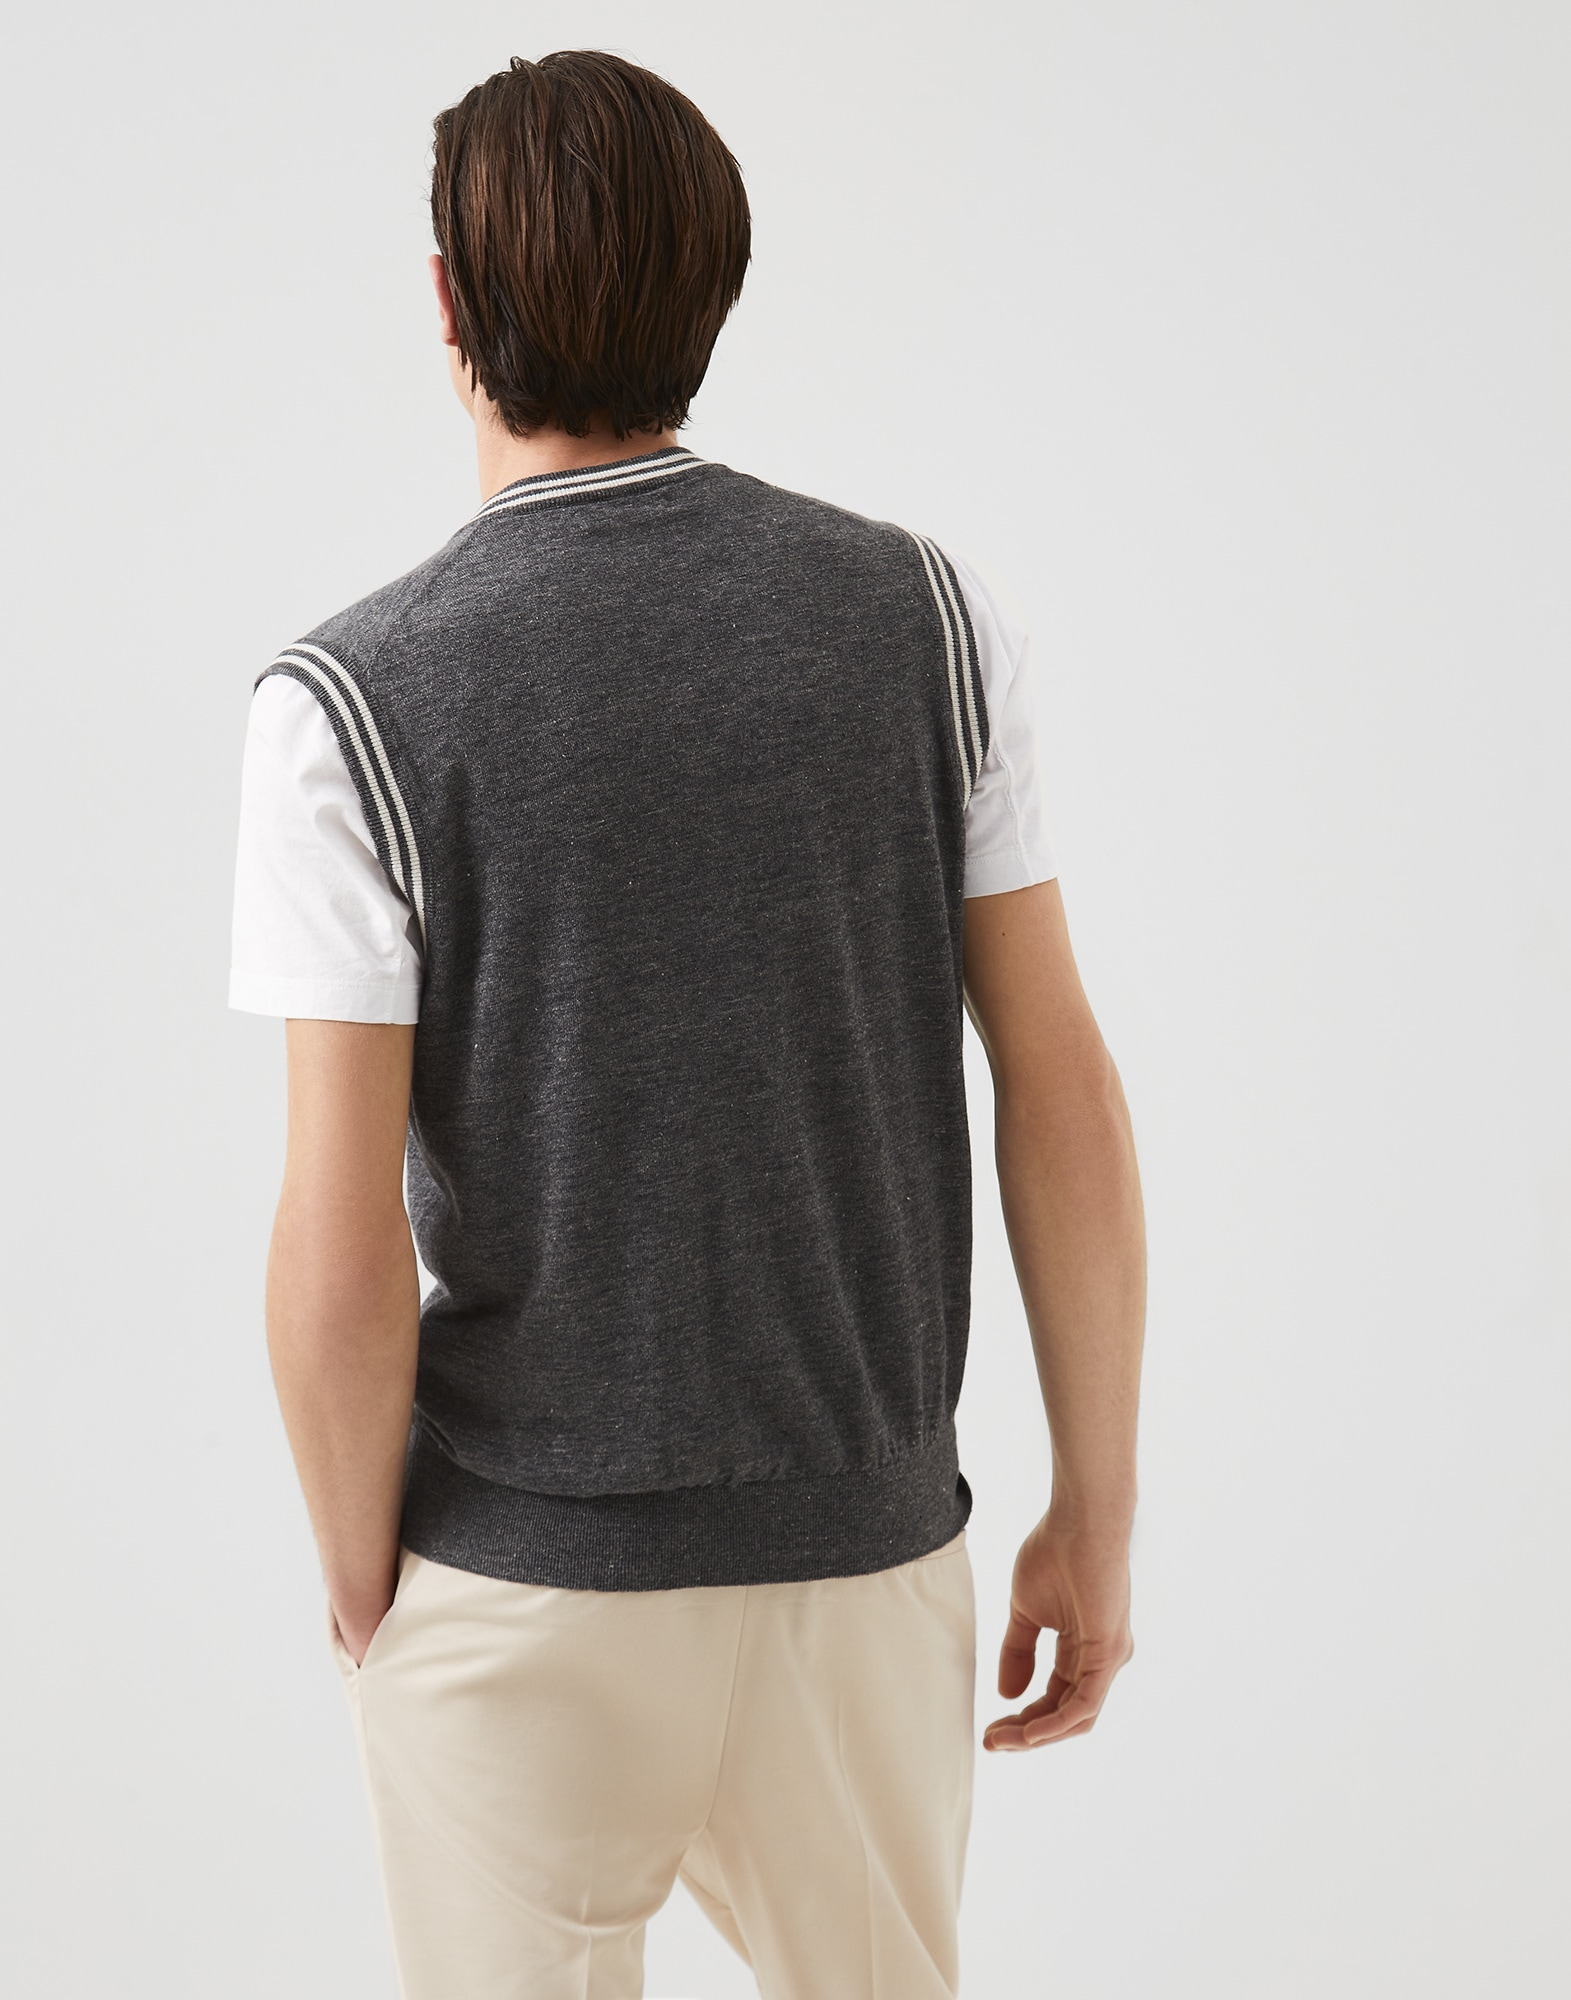 V-neck - Back view